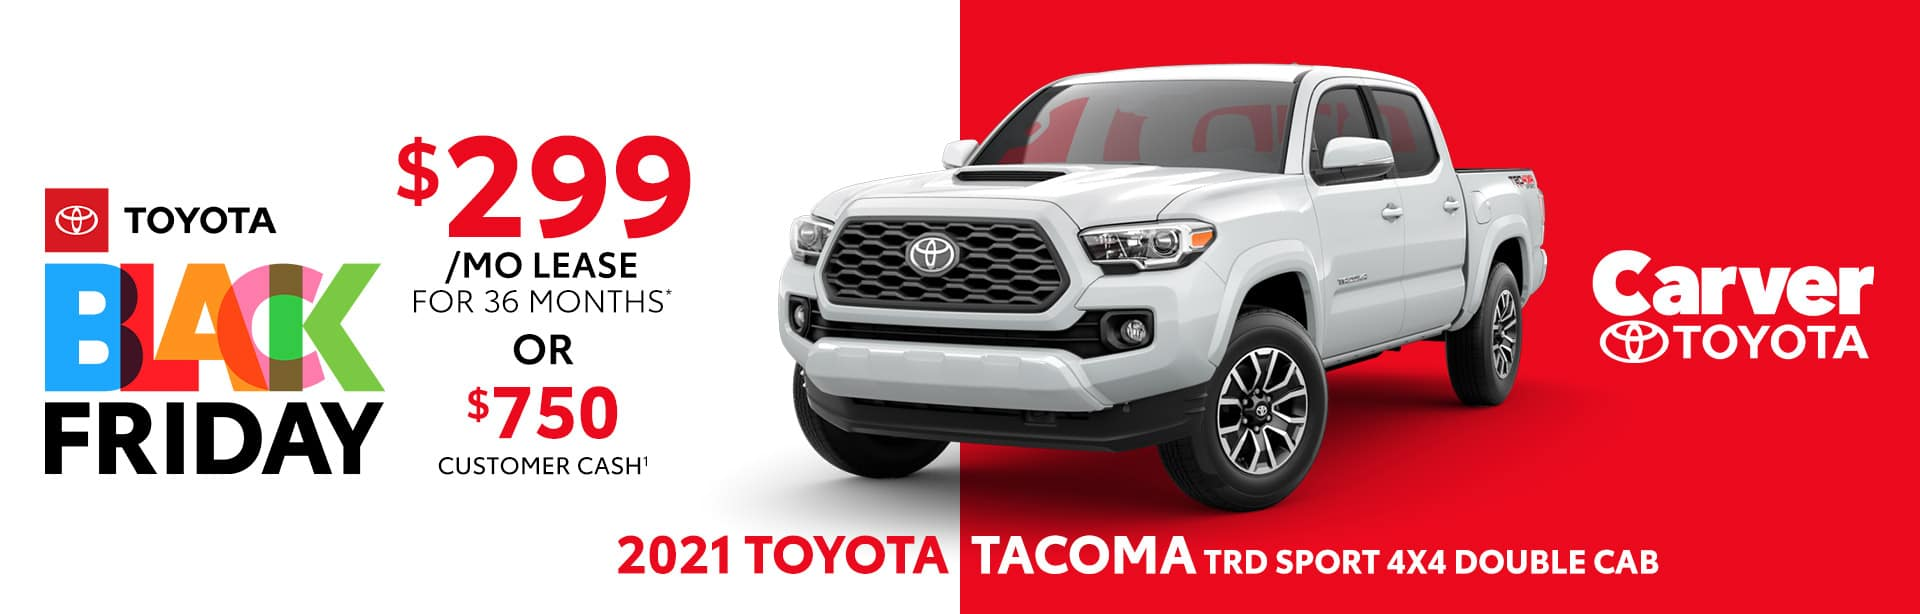 Best lease or customer cash deal on the new 2021 Toyota Tacoma TRD near Columbus, IN